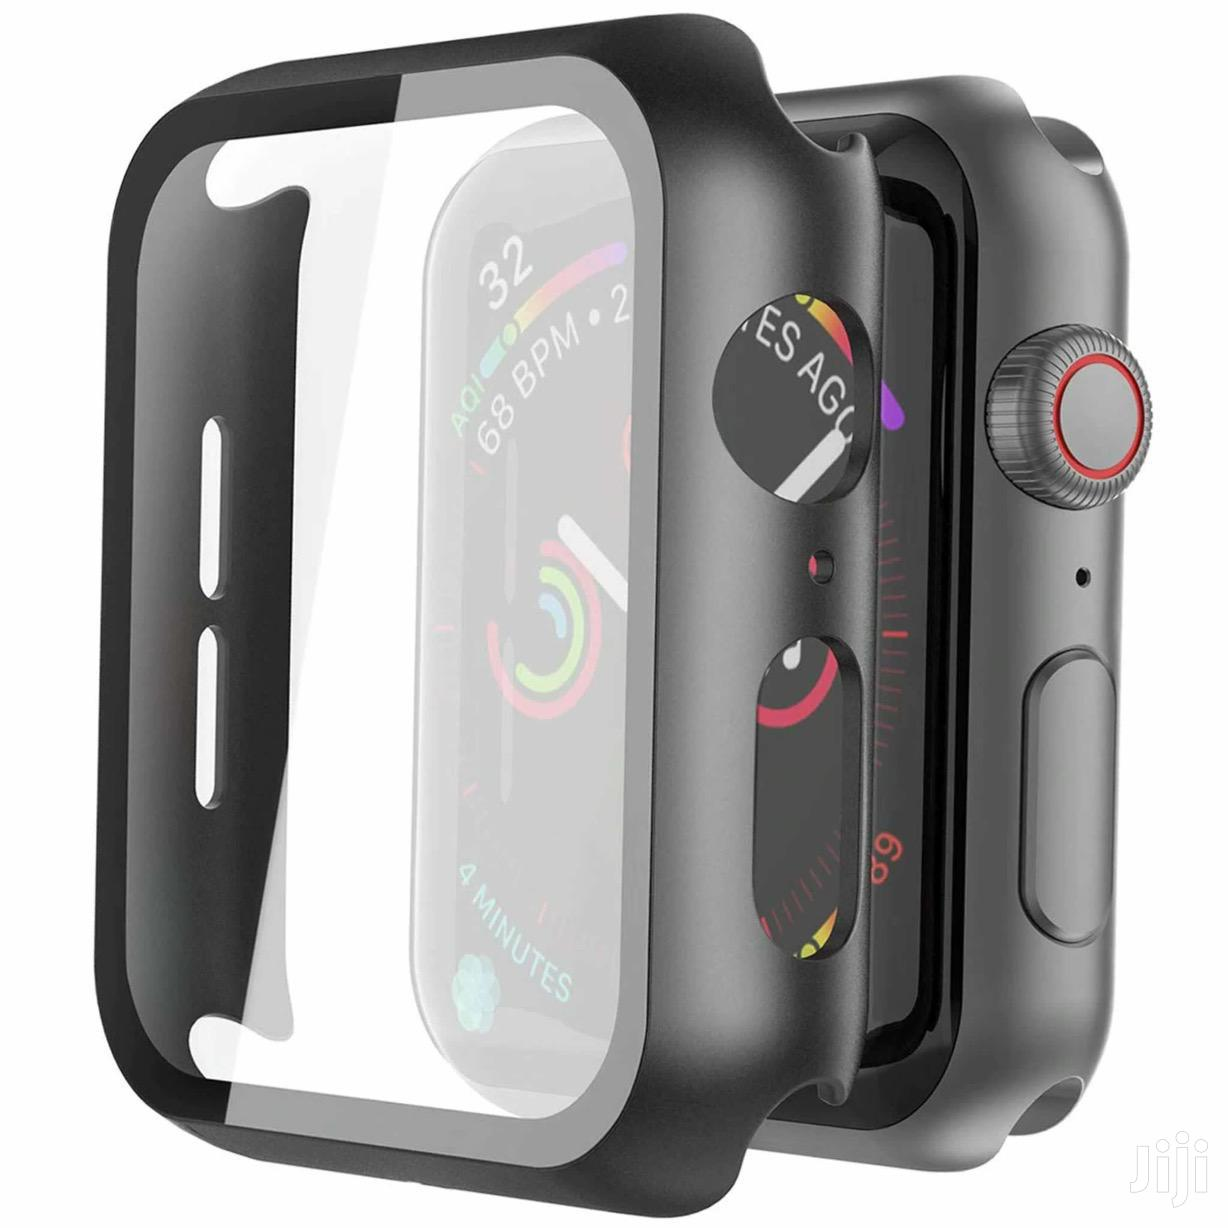 Apple Watch Glass + Case Black Color 44mm | Smart Watches & Trackers for sale in Mvita, Mombasa, Kenya